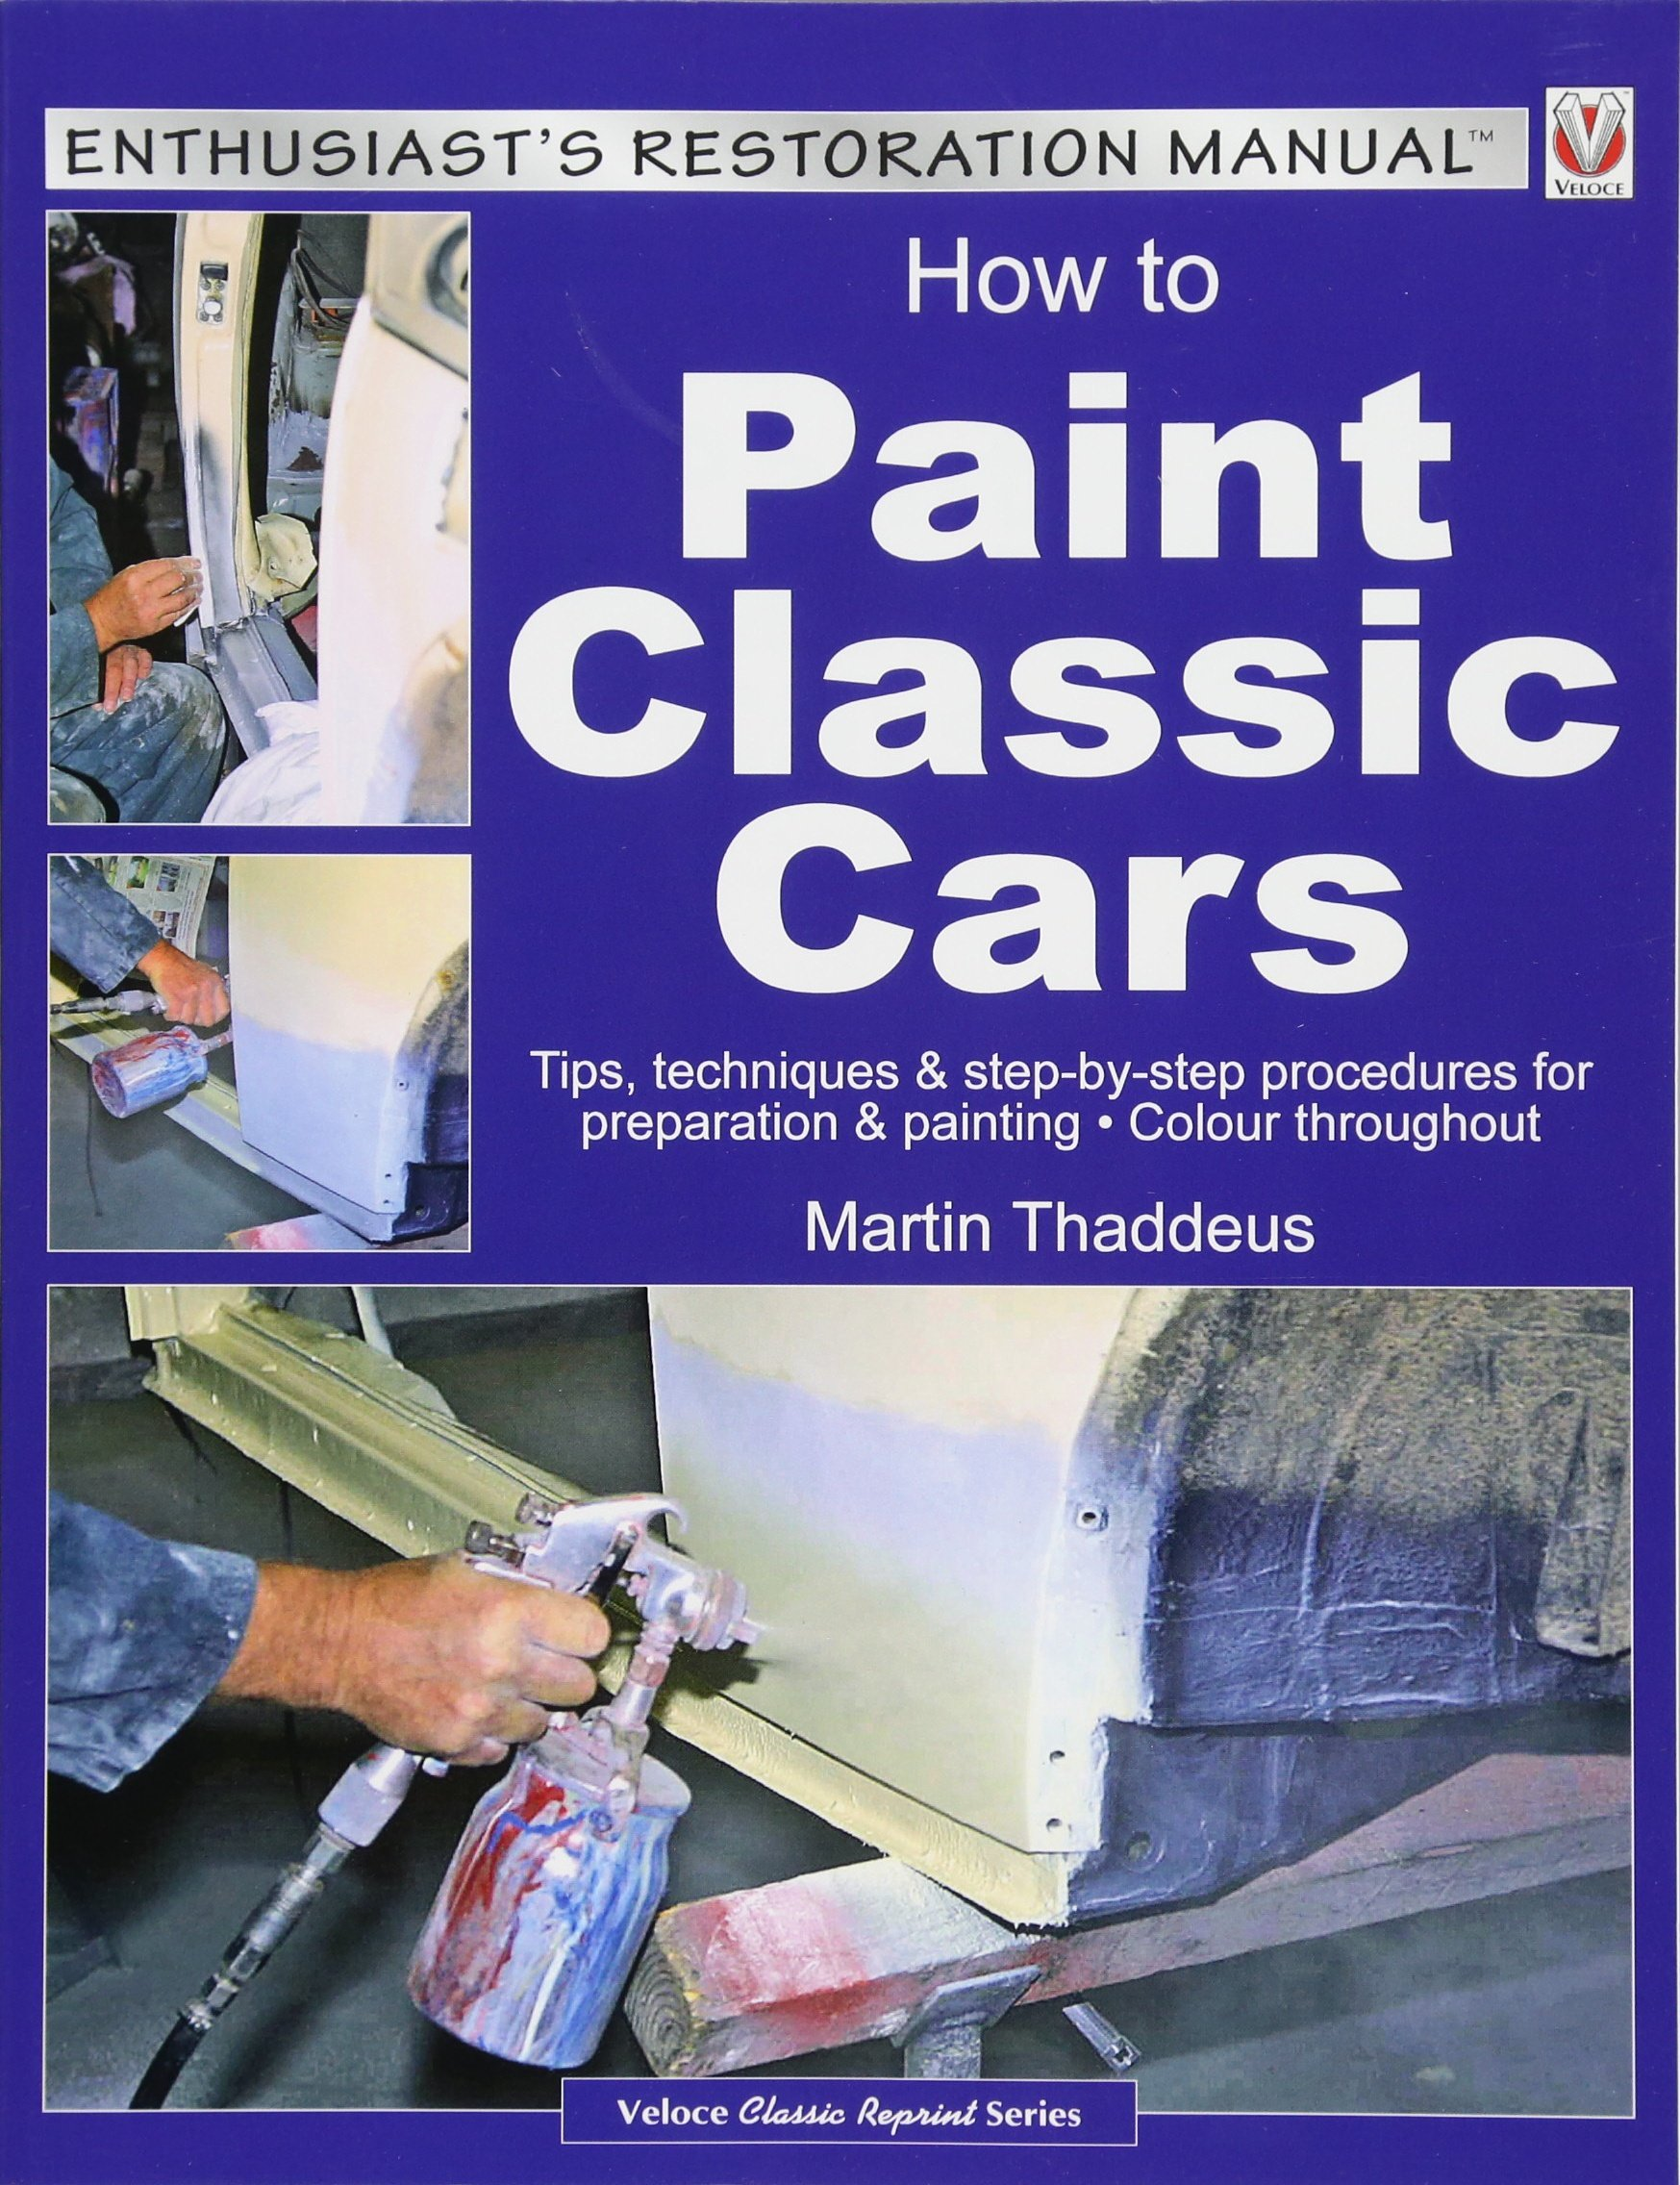 Read Online How to Paint Classic Cars: Tips, techniques & step-by-step procedures for preparation & painting (Enthusiast's Restoration Manual) pdf